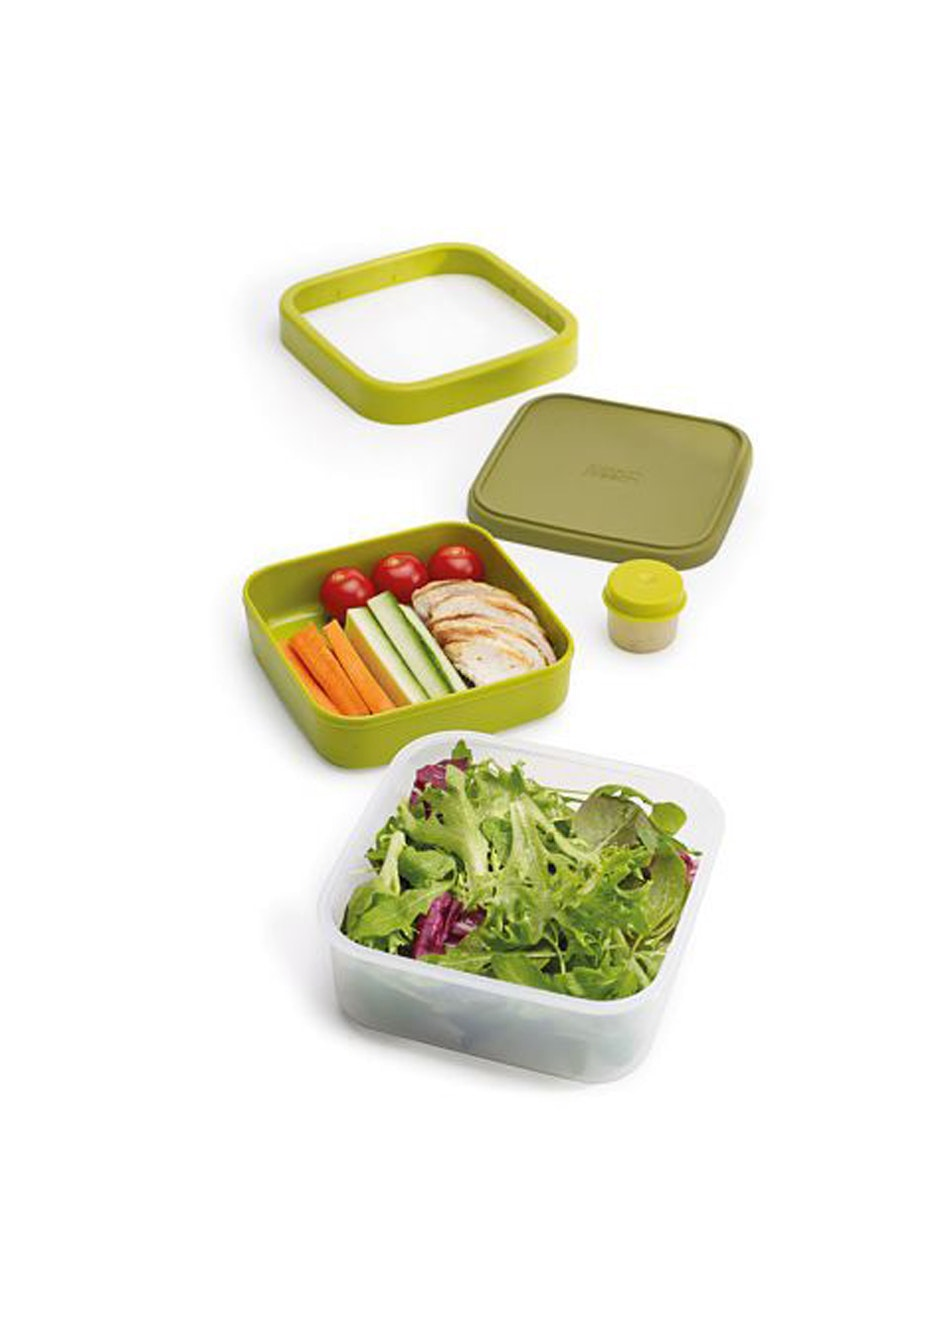 Joseph Joseph - GoEat Compact 3-in-1 salad box - Green